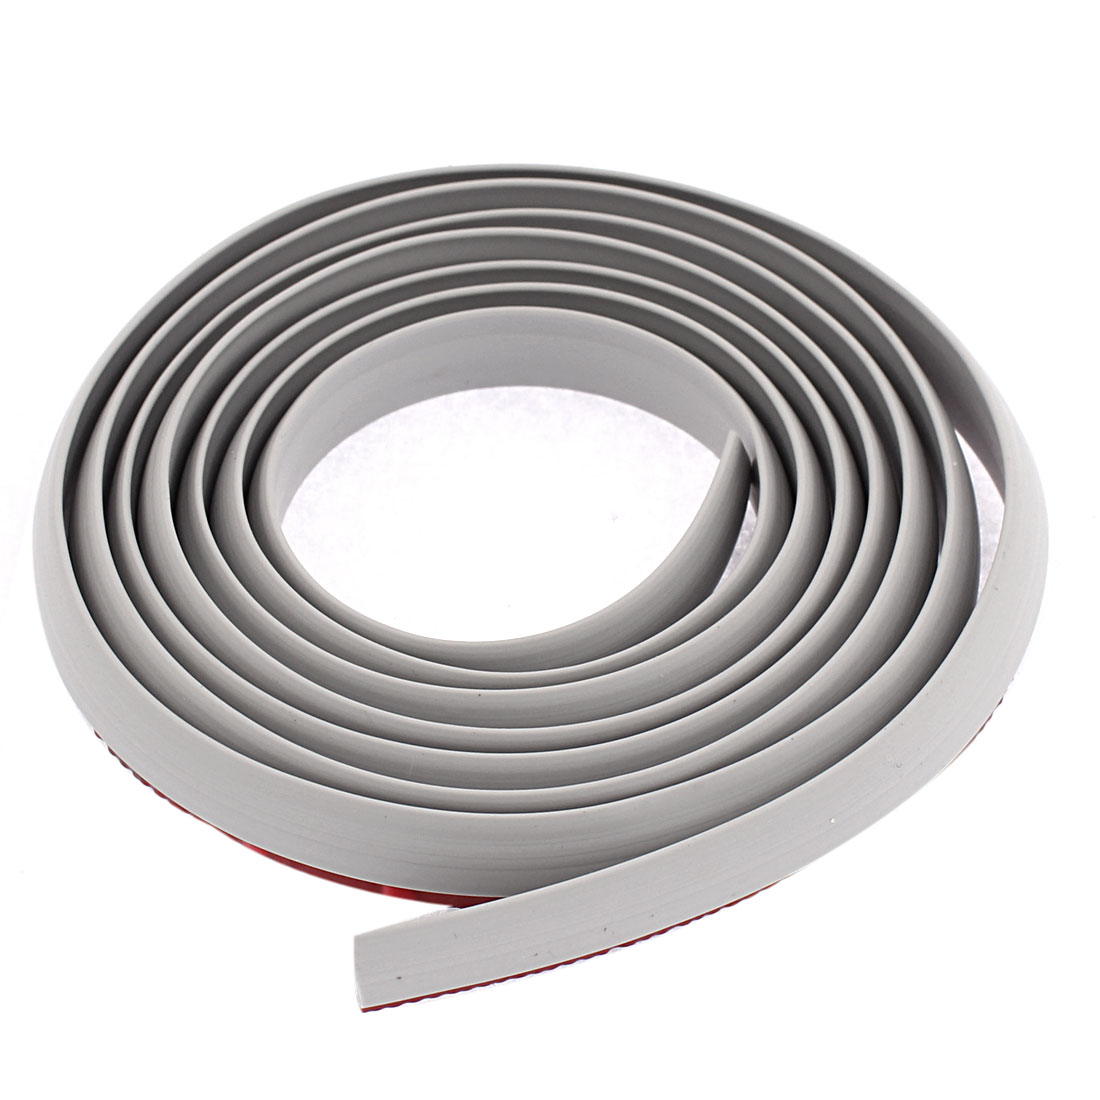 Car Truck DIY Rubber Seal Edge Trim Channel Strip Gray 5.6Ft